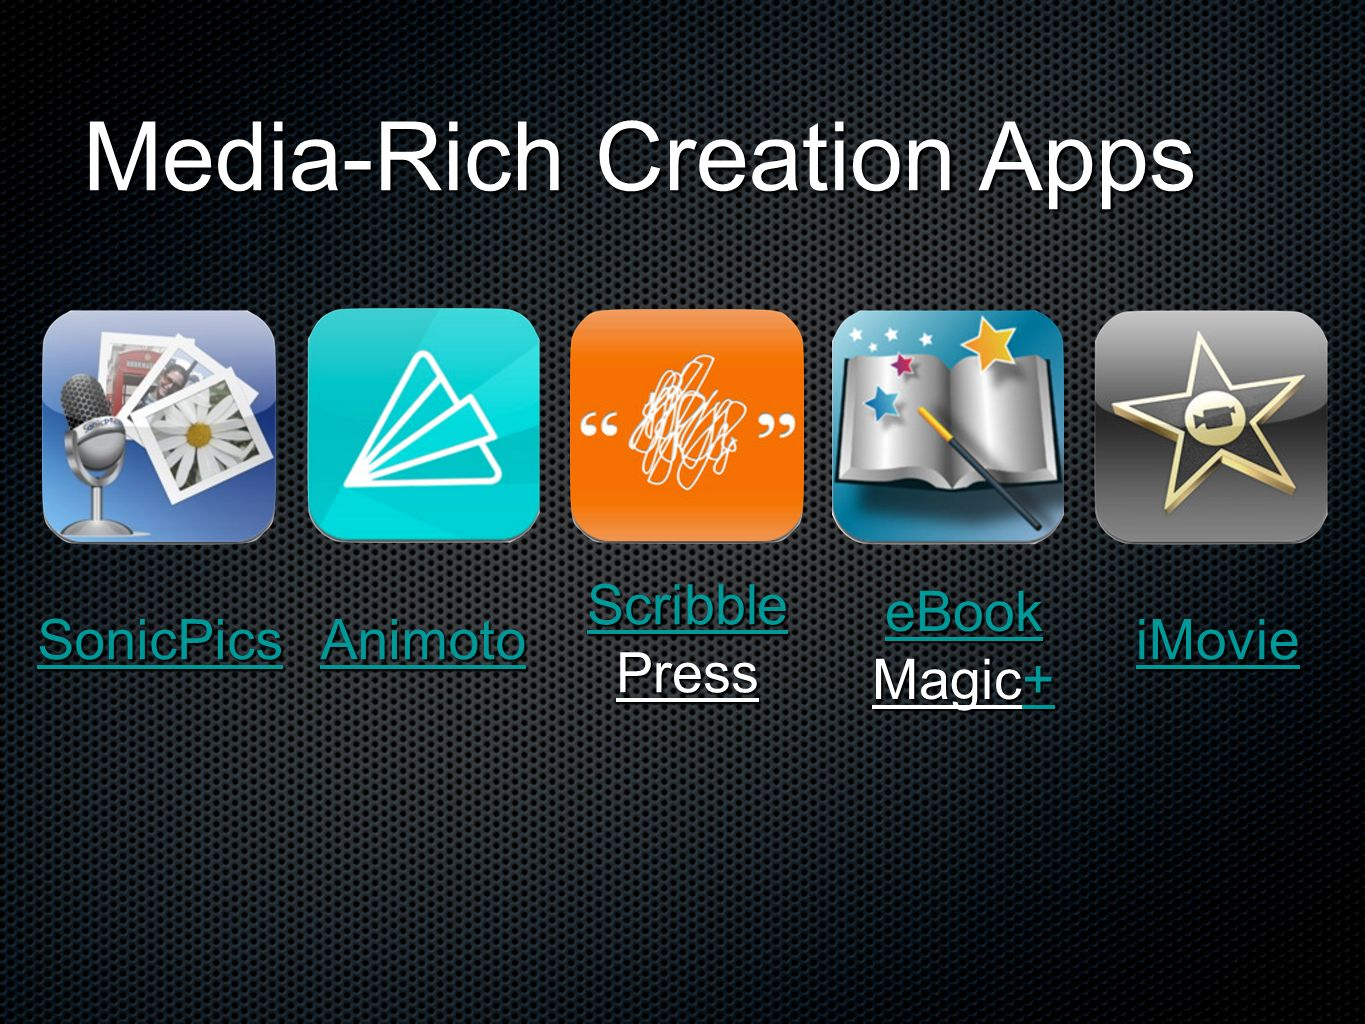 Media-Rich Creation Apps